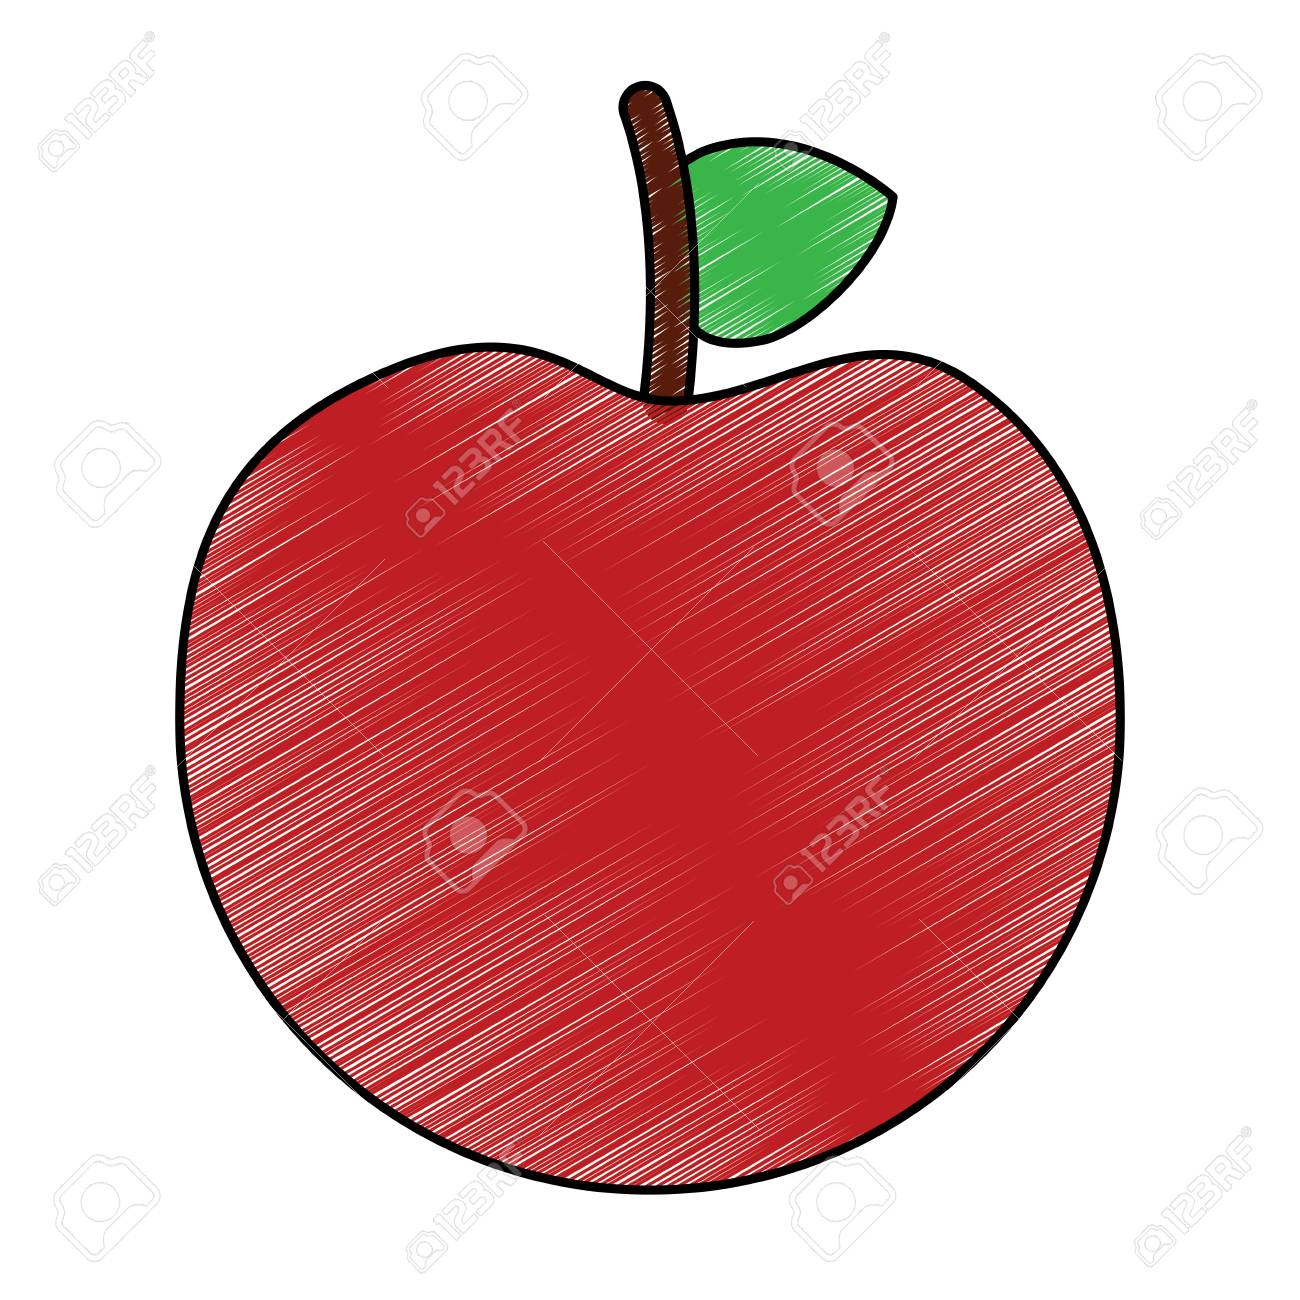 Fresh Tasty Fruit Apple Nutrition Diet Vector Illustration Drawing Royalty Free Cliparts Vectors And Stock Illustration Image 95142074